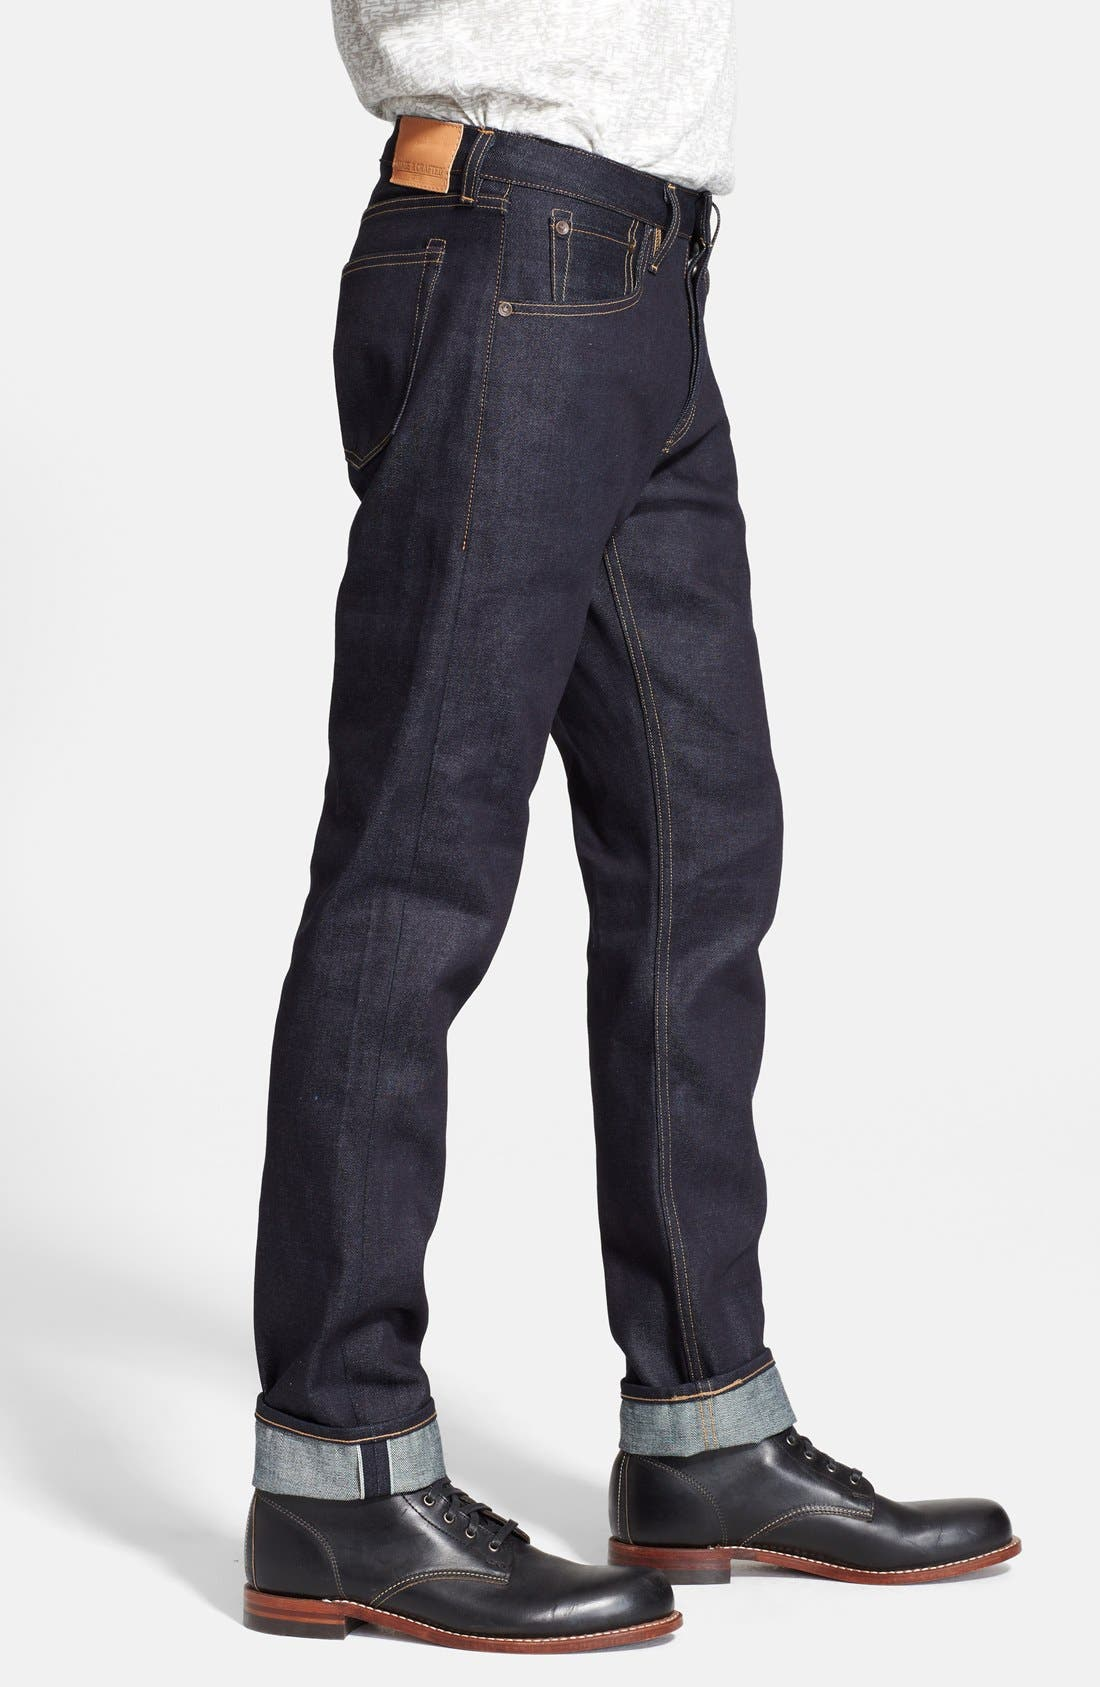 LEVI'S<SUP>®</SUP> MADE & CRAFTED<SUP>™</SUP>,                             'Tack' Slim Fit Jeans,                             Alternate thumbnail 2, color,                             400